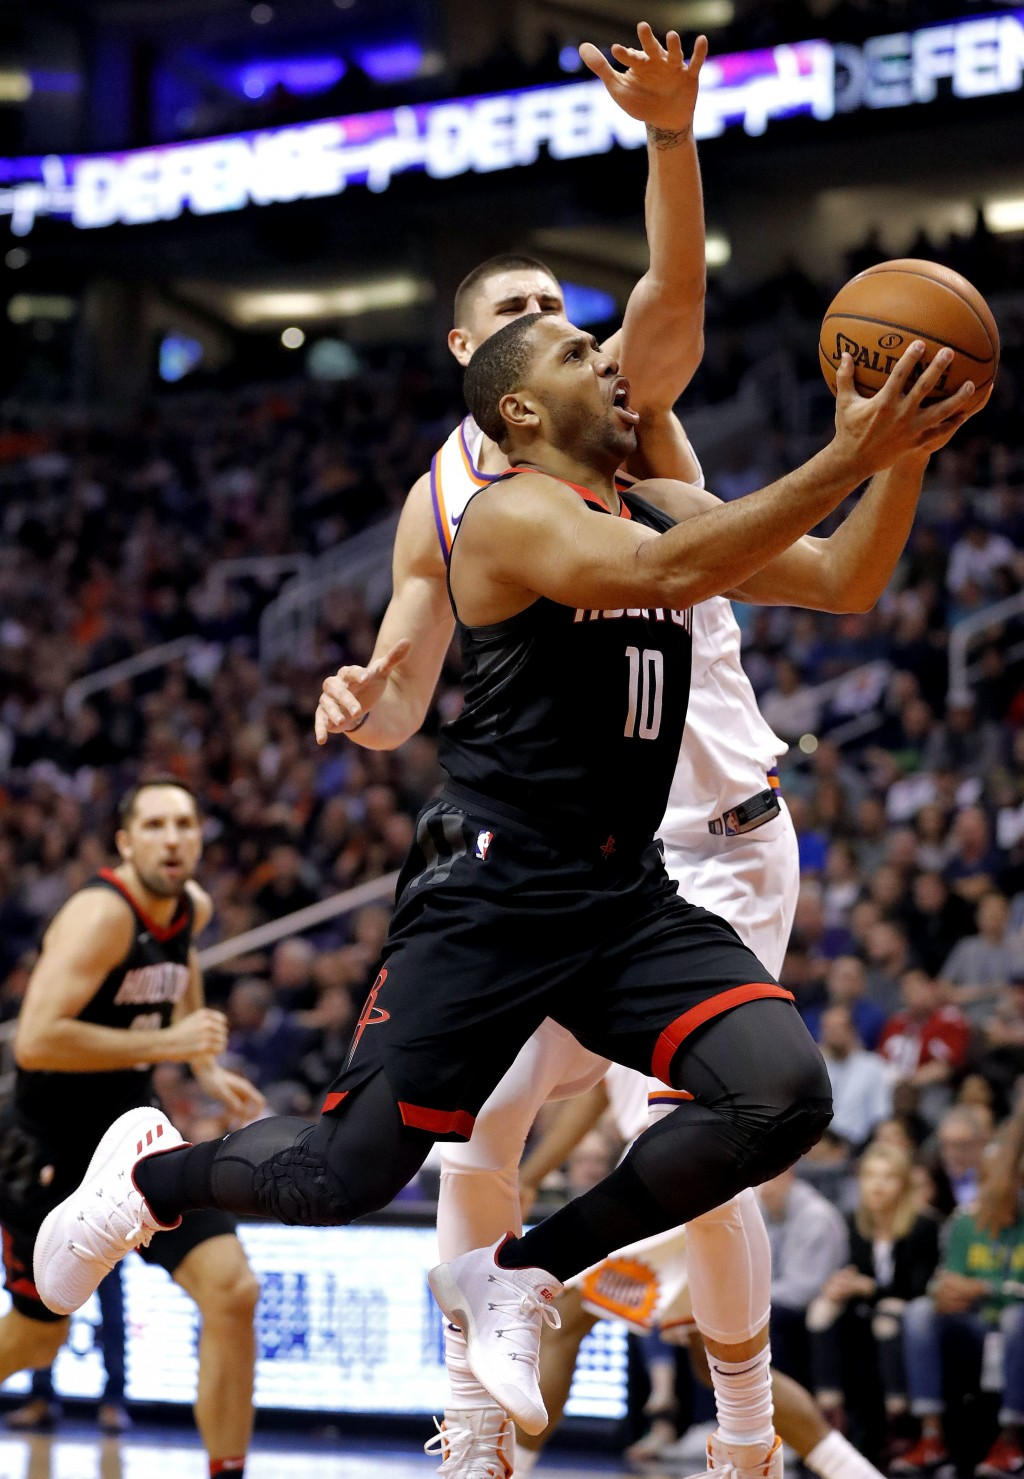 f3bca026263f Houston Rockets guard Eric Gordon (10) slips past Phoenix Suns center Alex  Len during